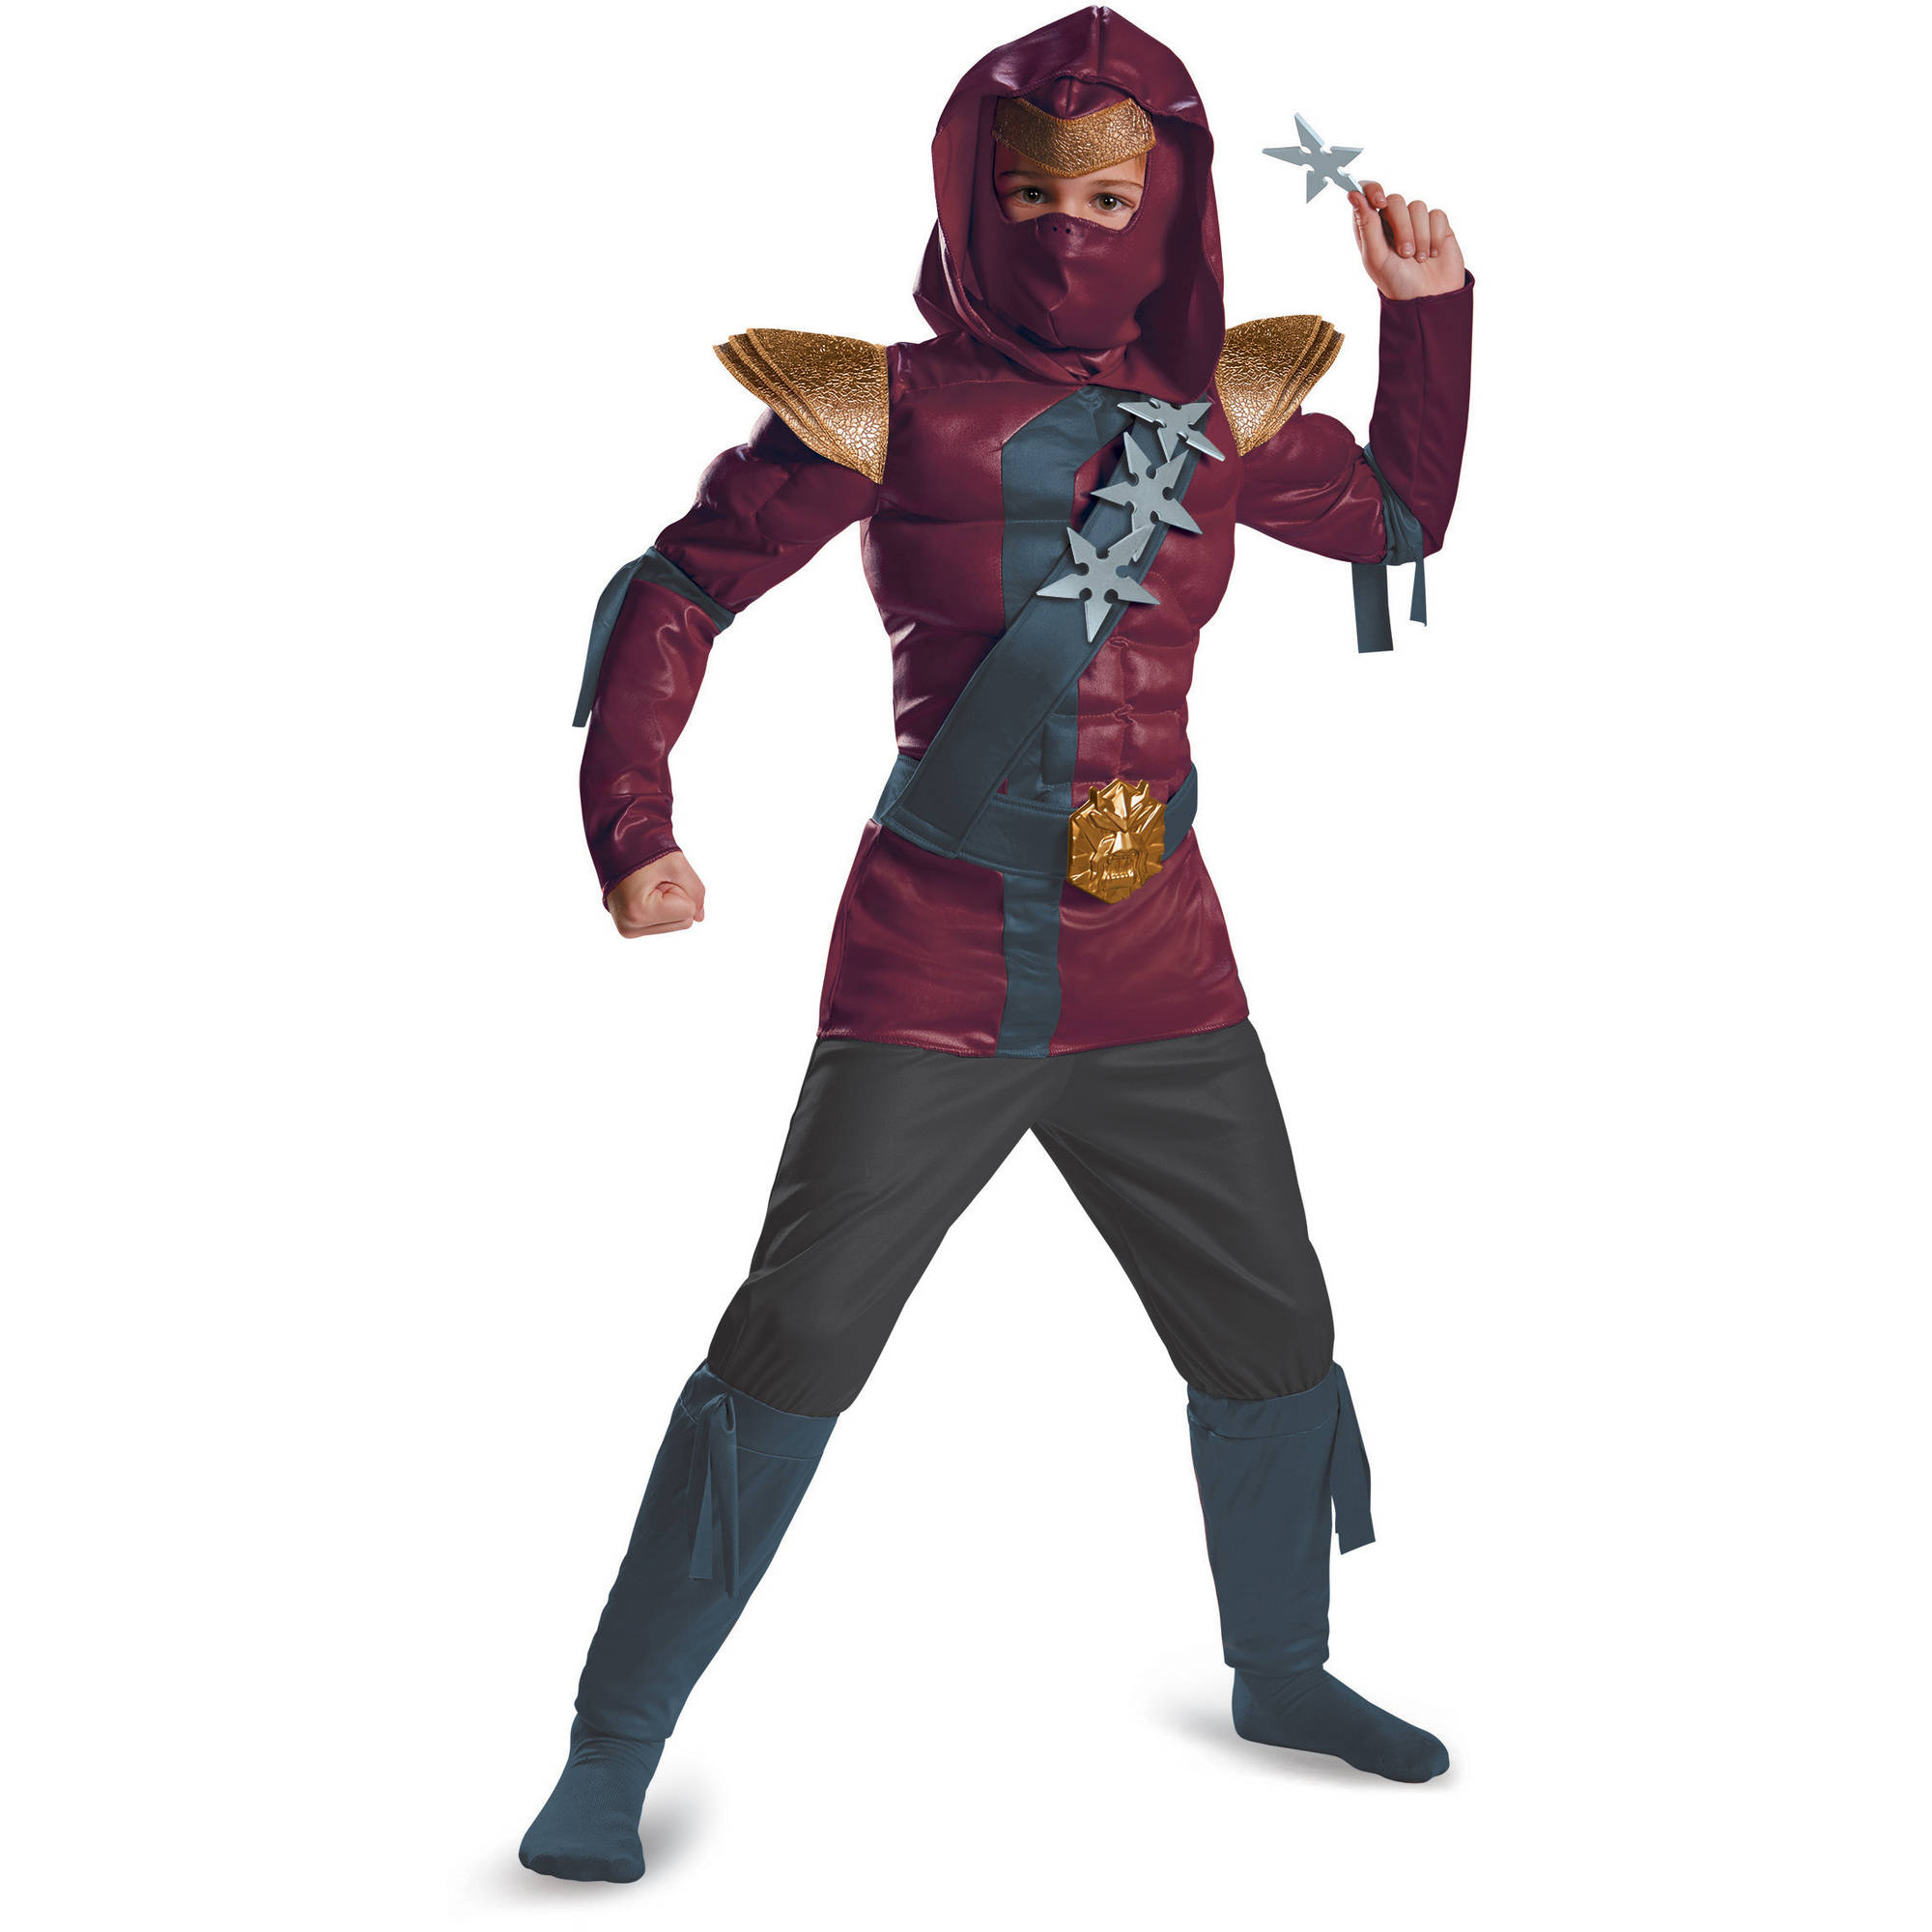 Crimsom Ninja Classic Muscle Child Halloween Costume by Disguise